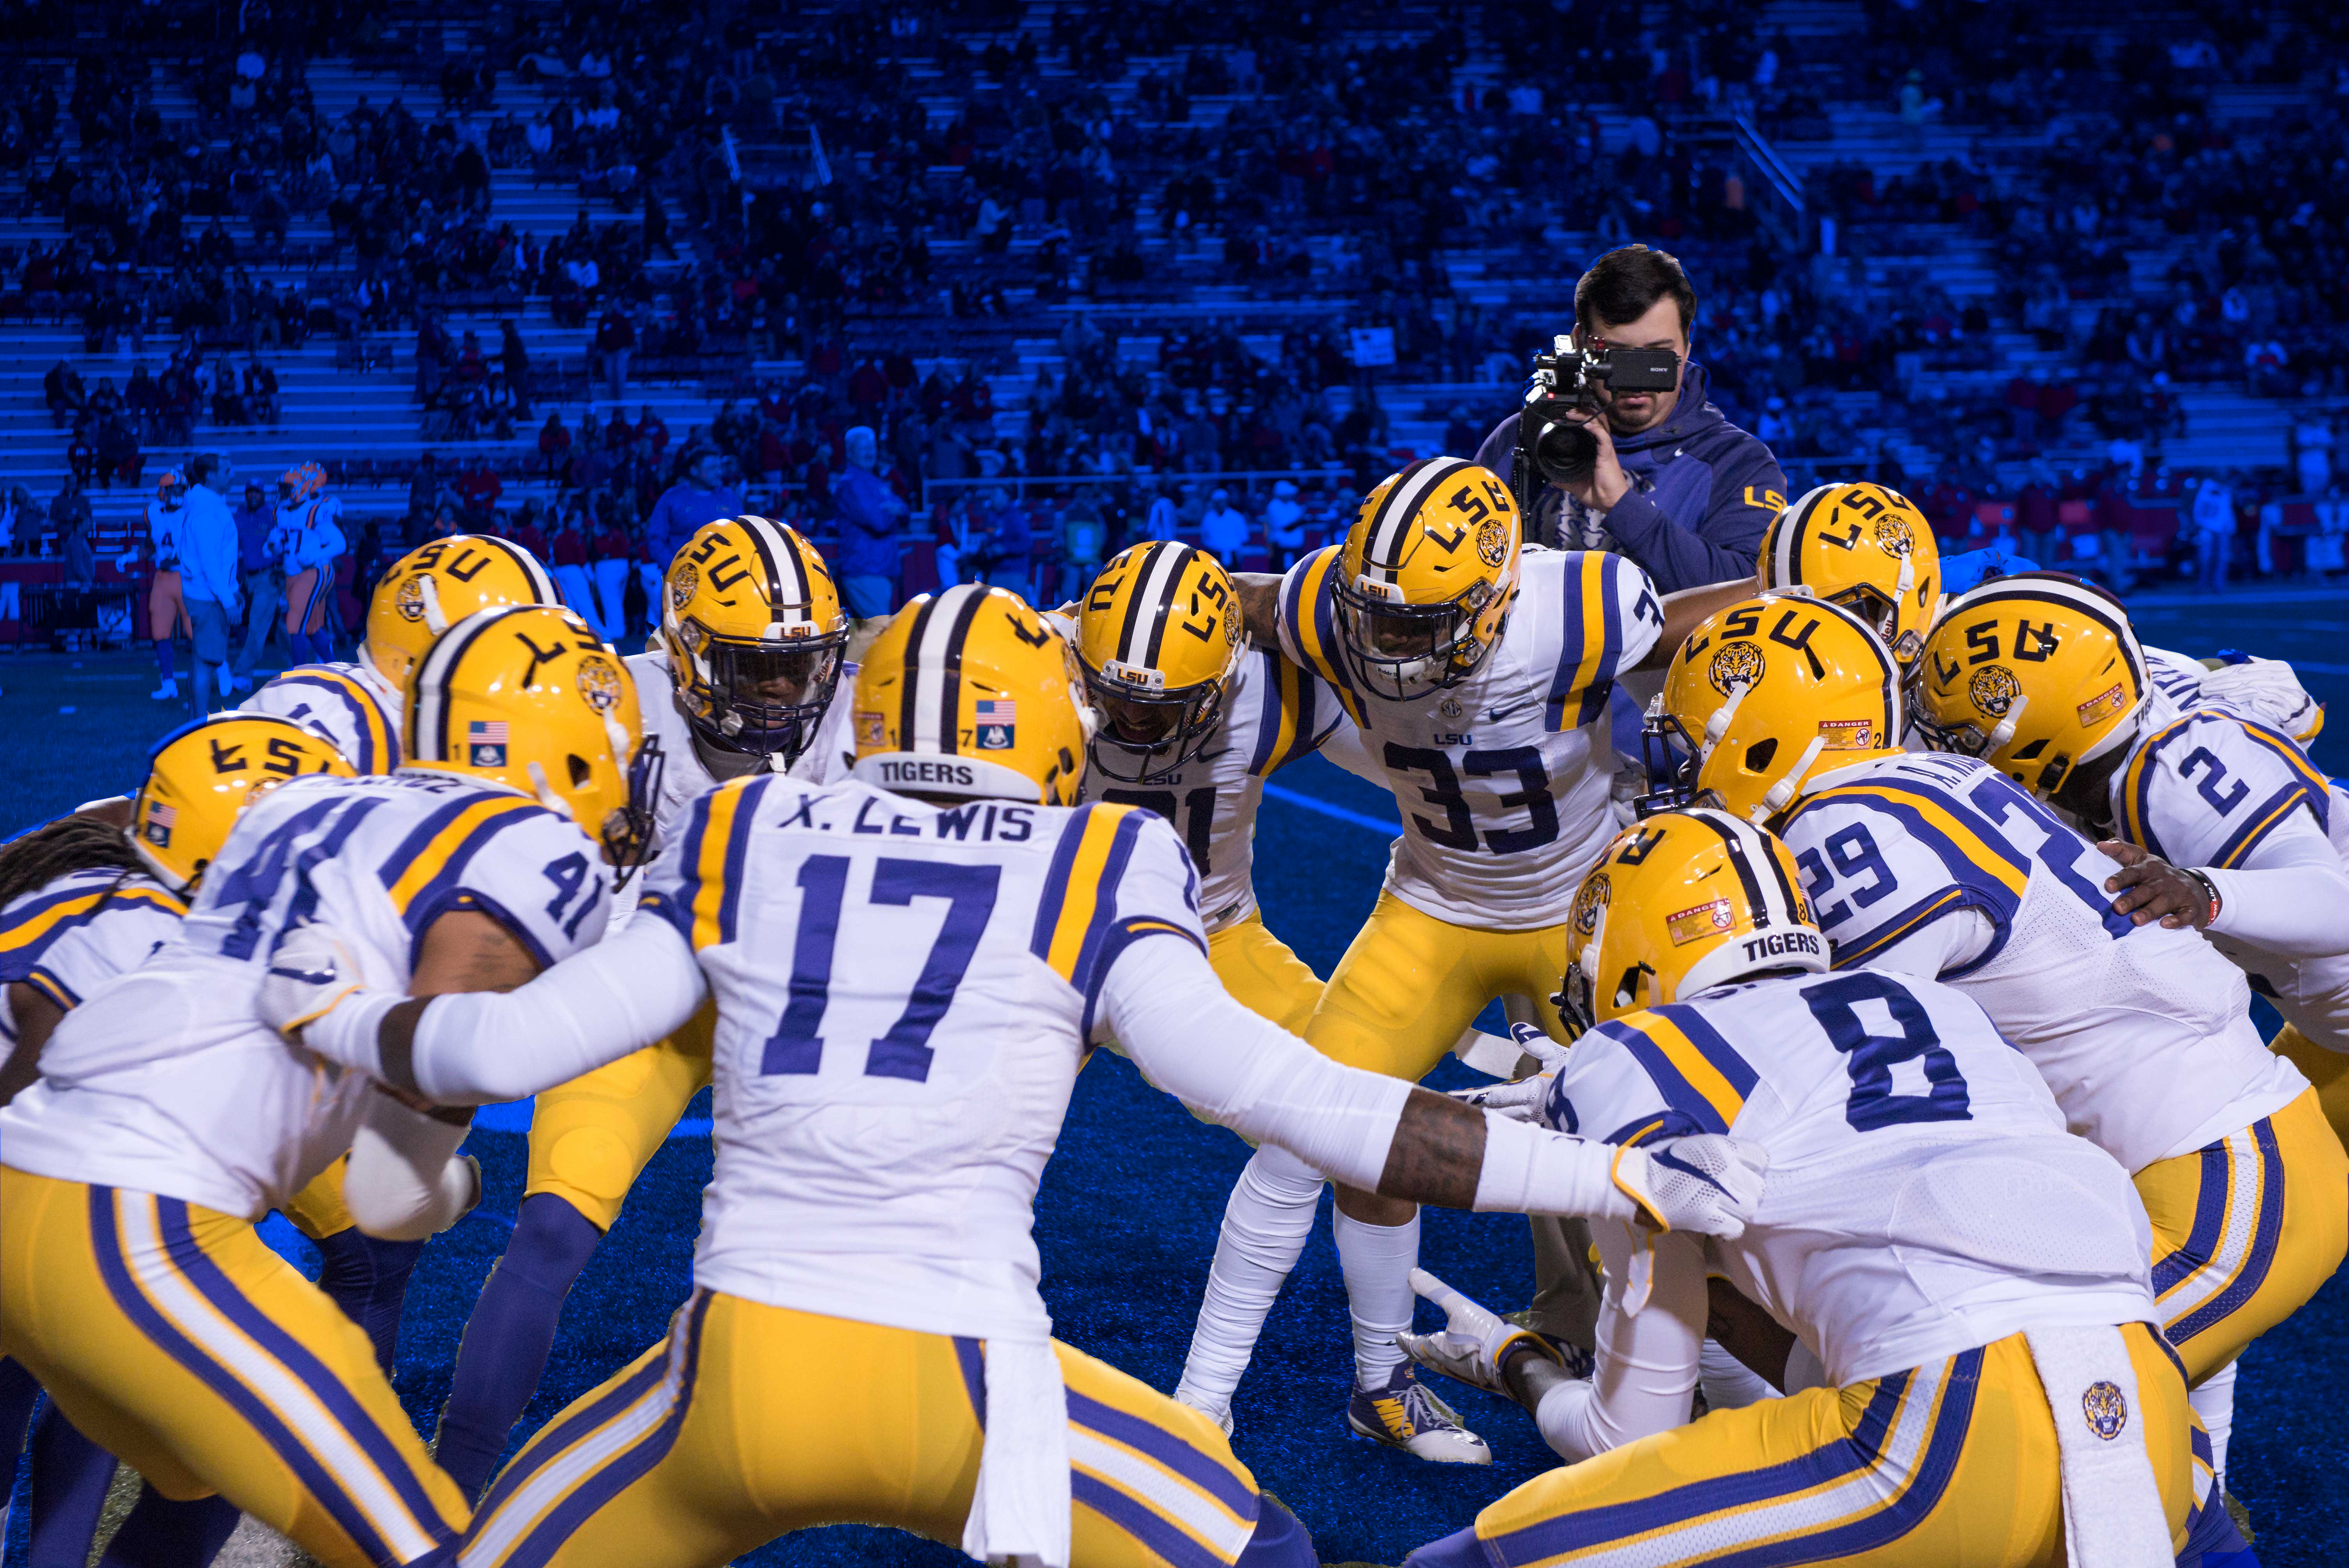 LSU players huddle before a game.